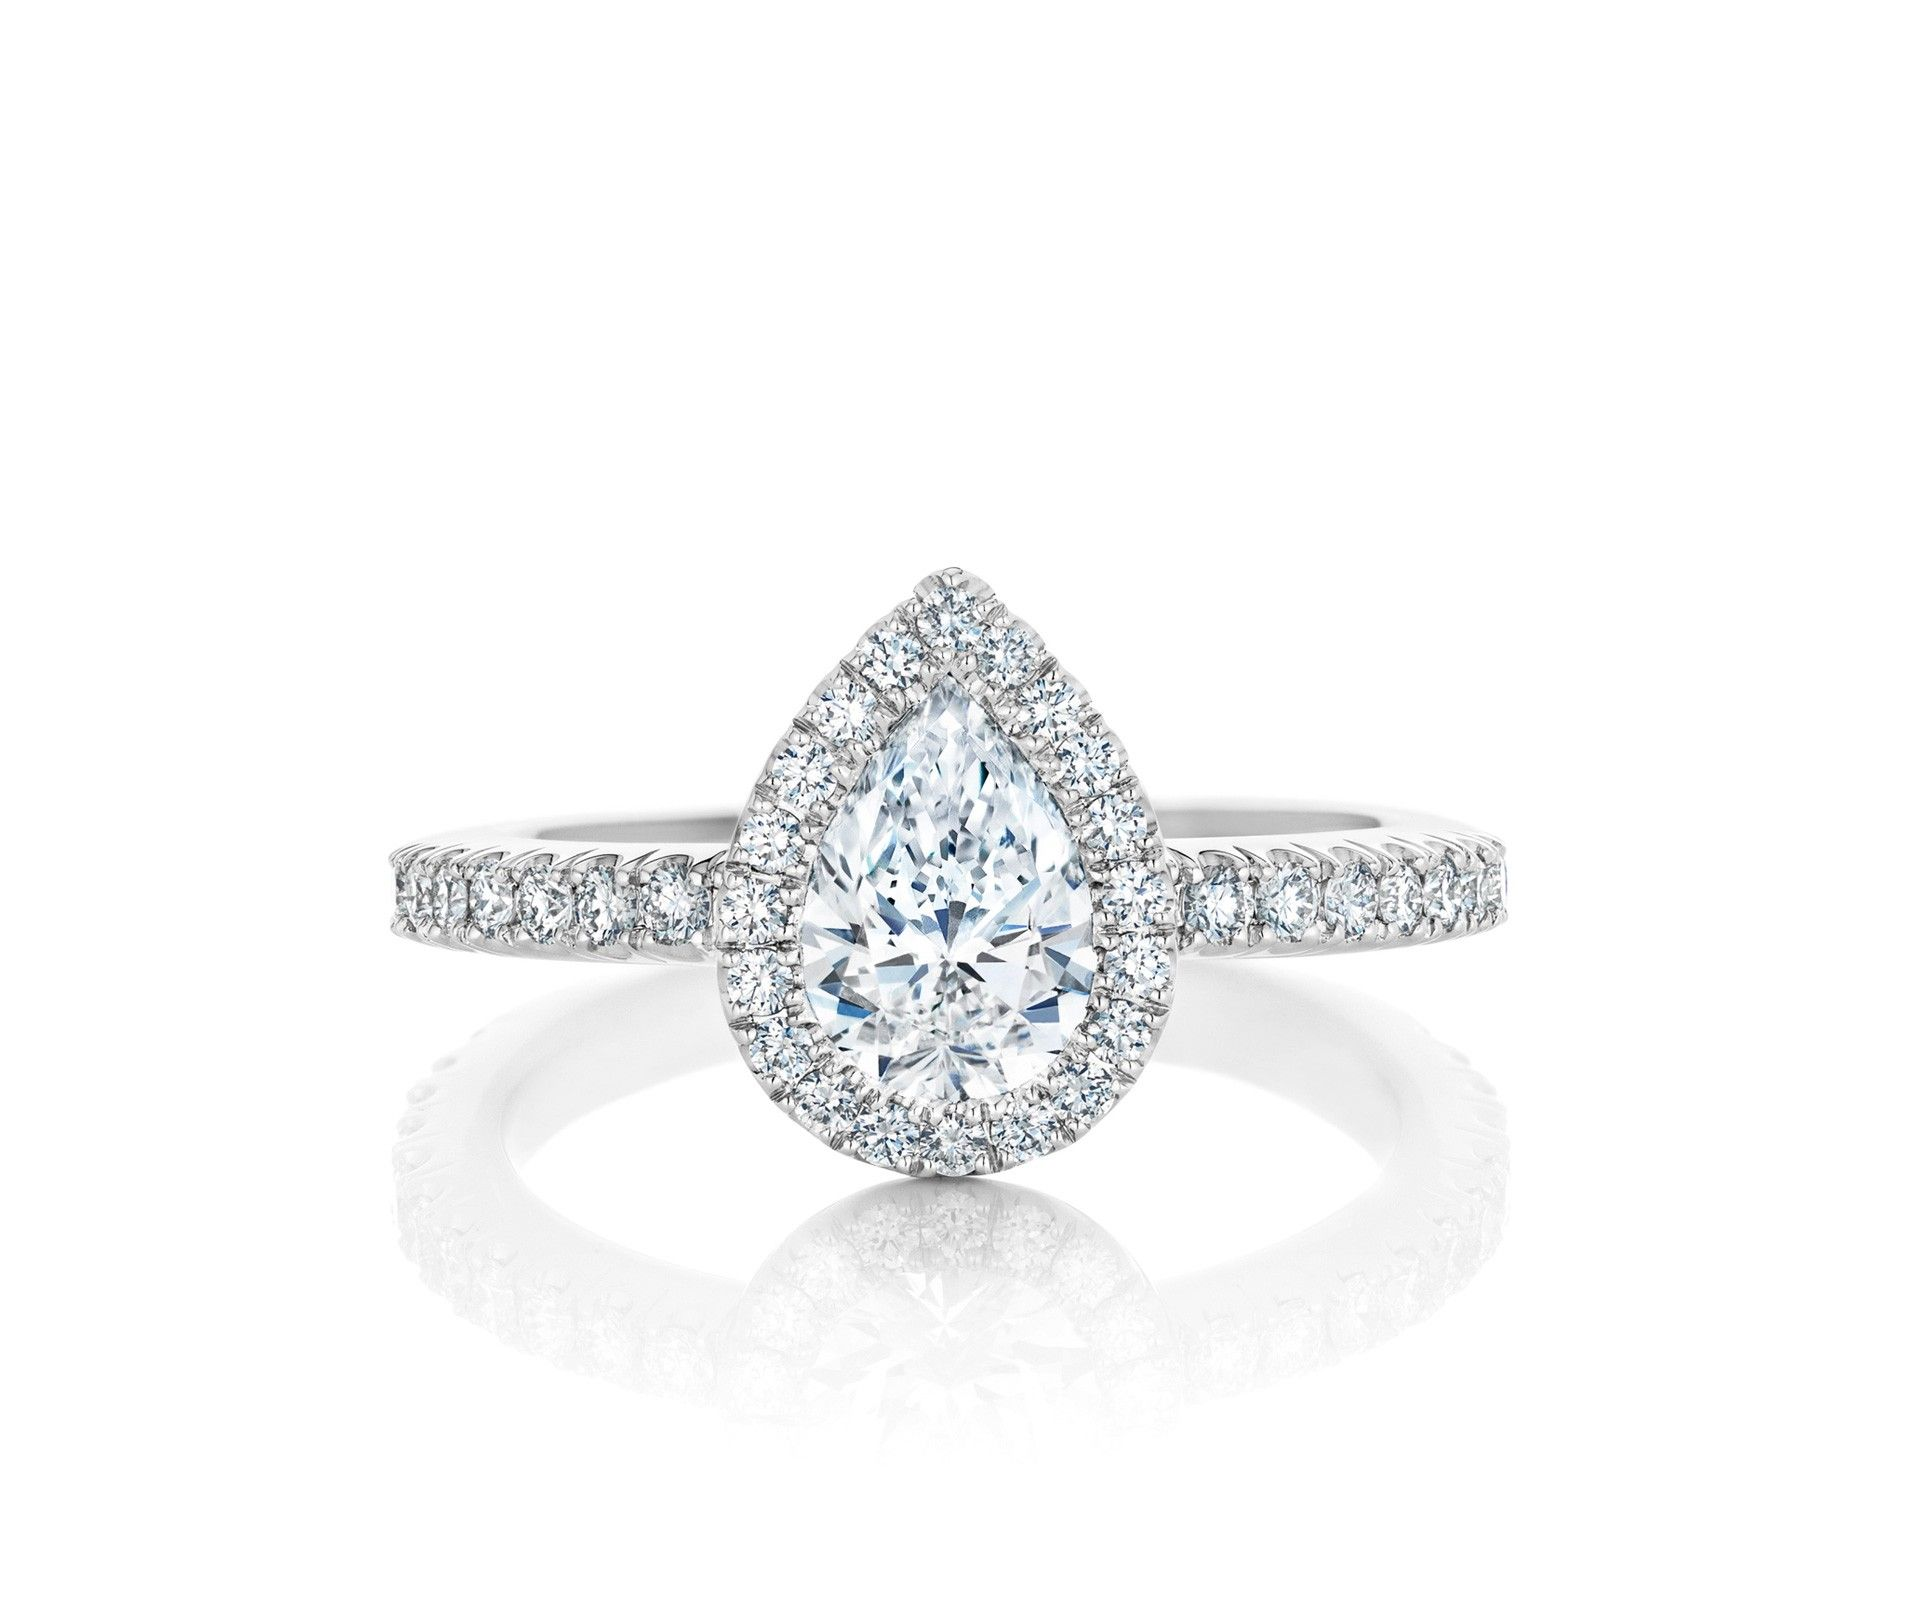 De beers aura pear cut solitaire ring beerengagement wedding